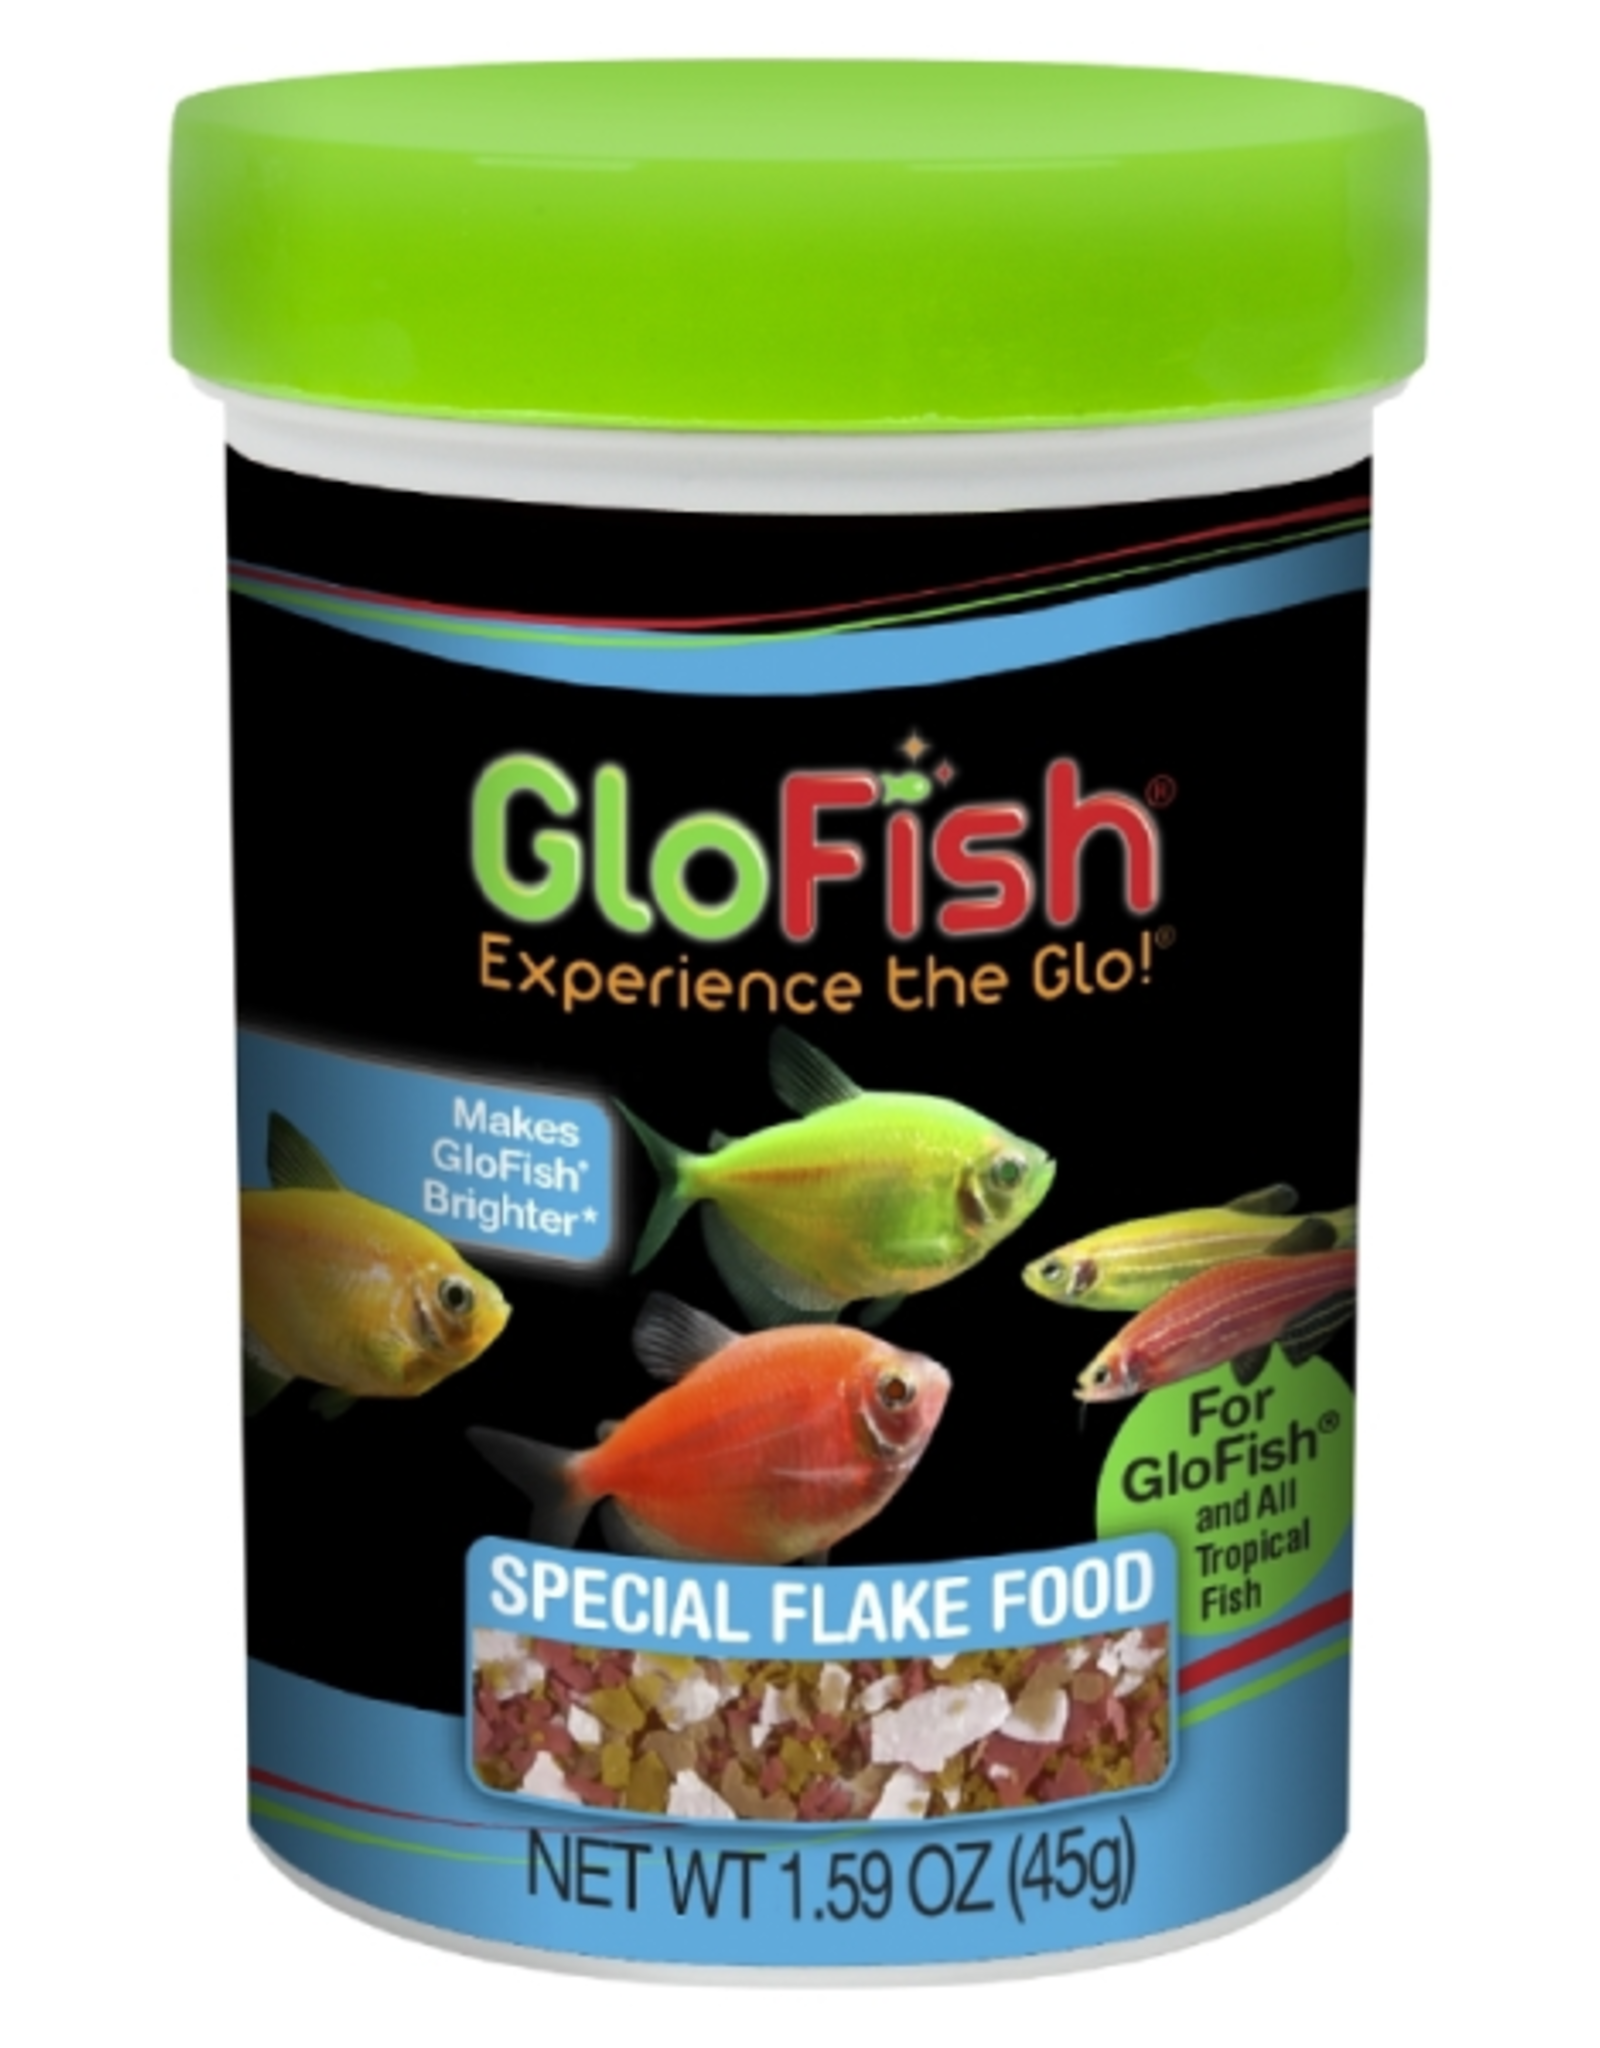 TETRA GloFish Special Flake Food 1.5OZ